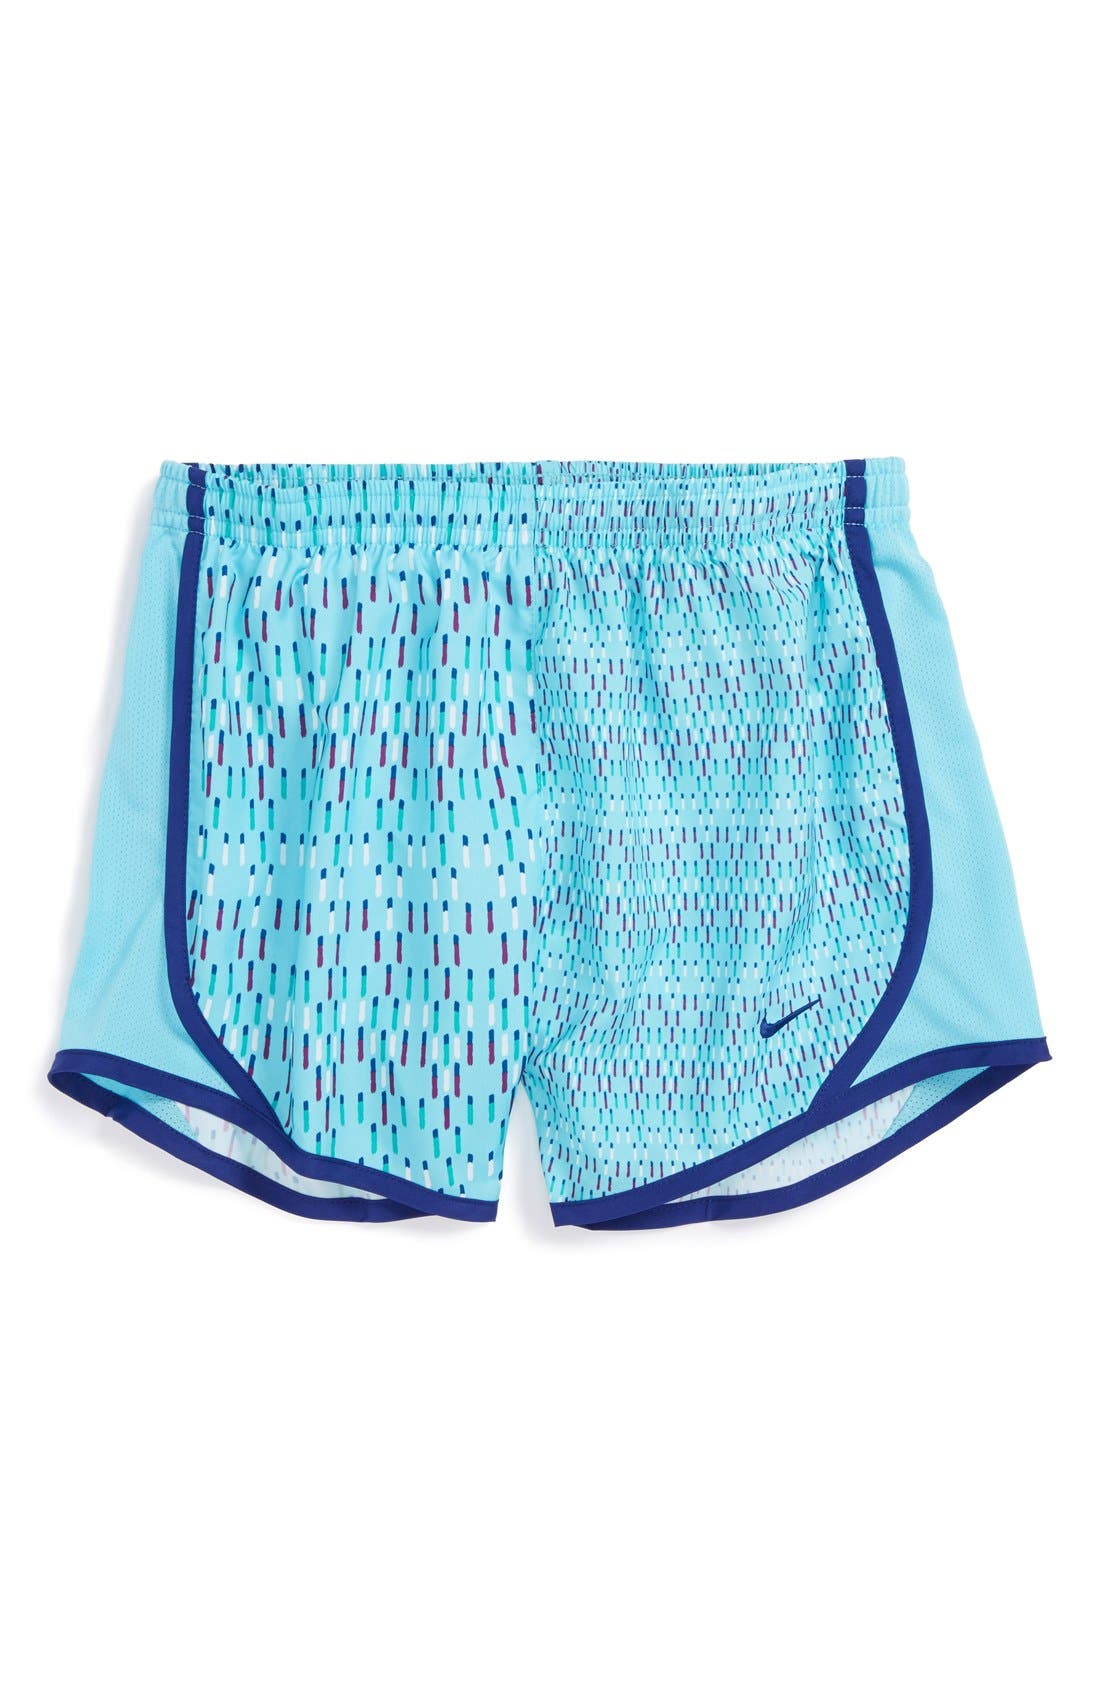 Alternate Image 1 Selected - Nike 'Tempo GFX' Dri-FIT Track Shorts (Big Girls)